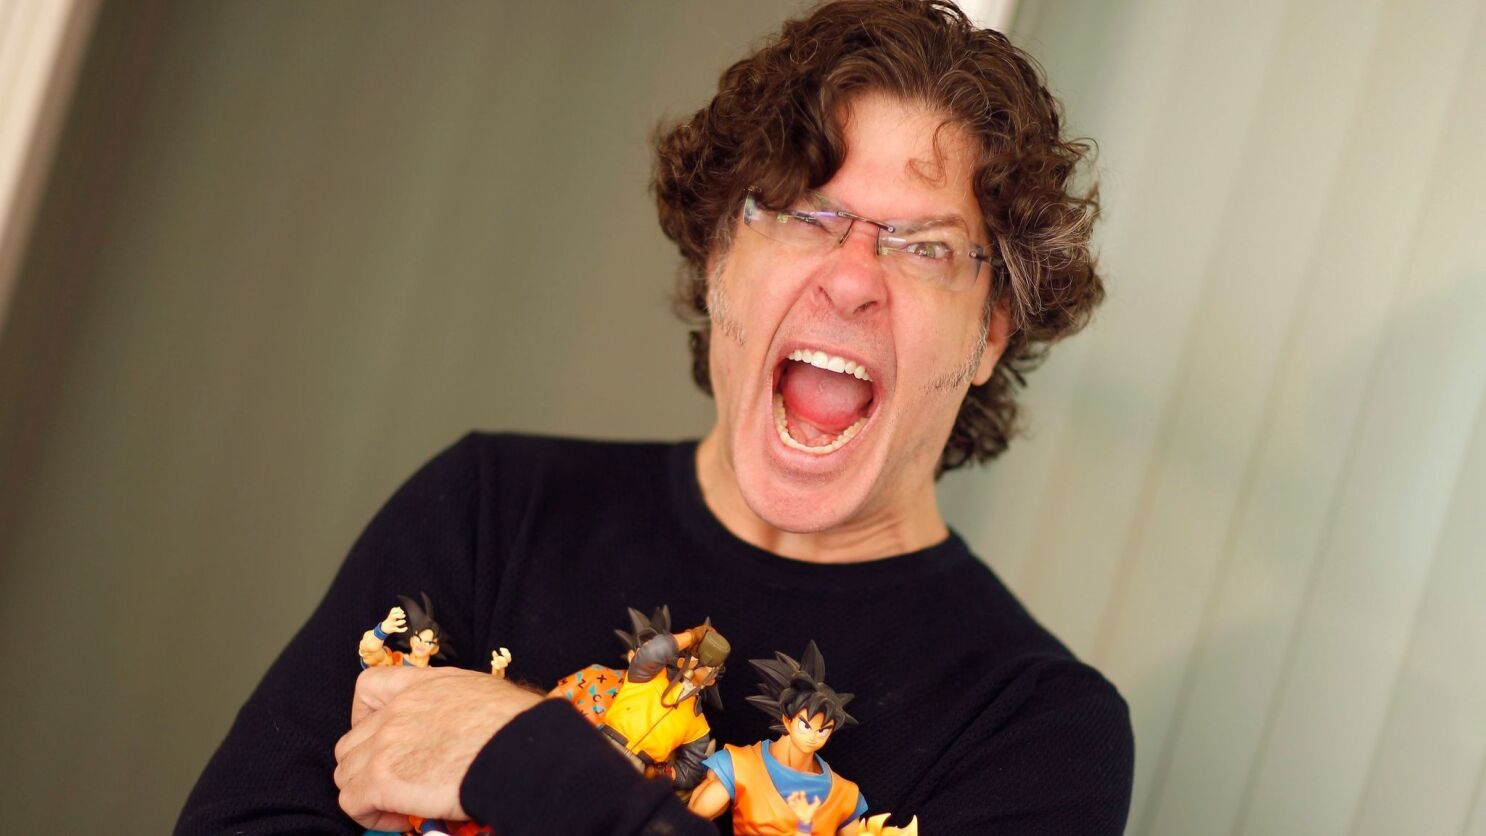 Dragon Ball S Voice Of Goku Speaks For Himself Los Angeles Times